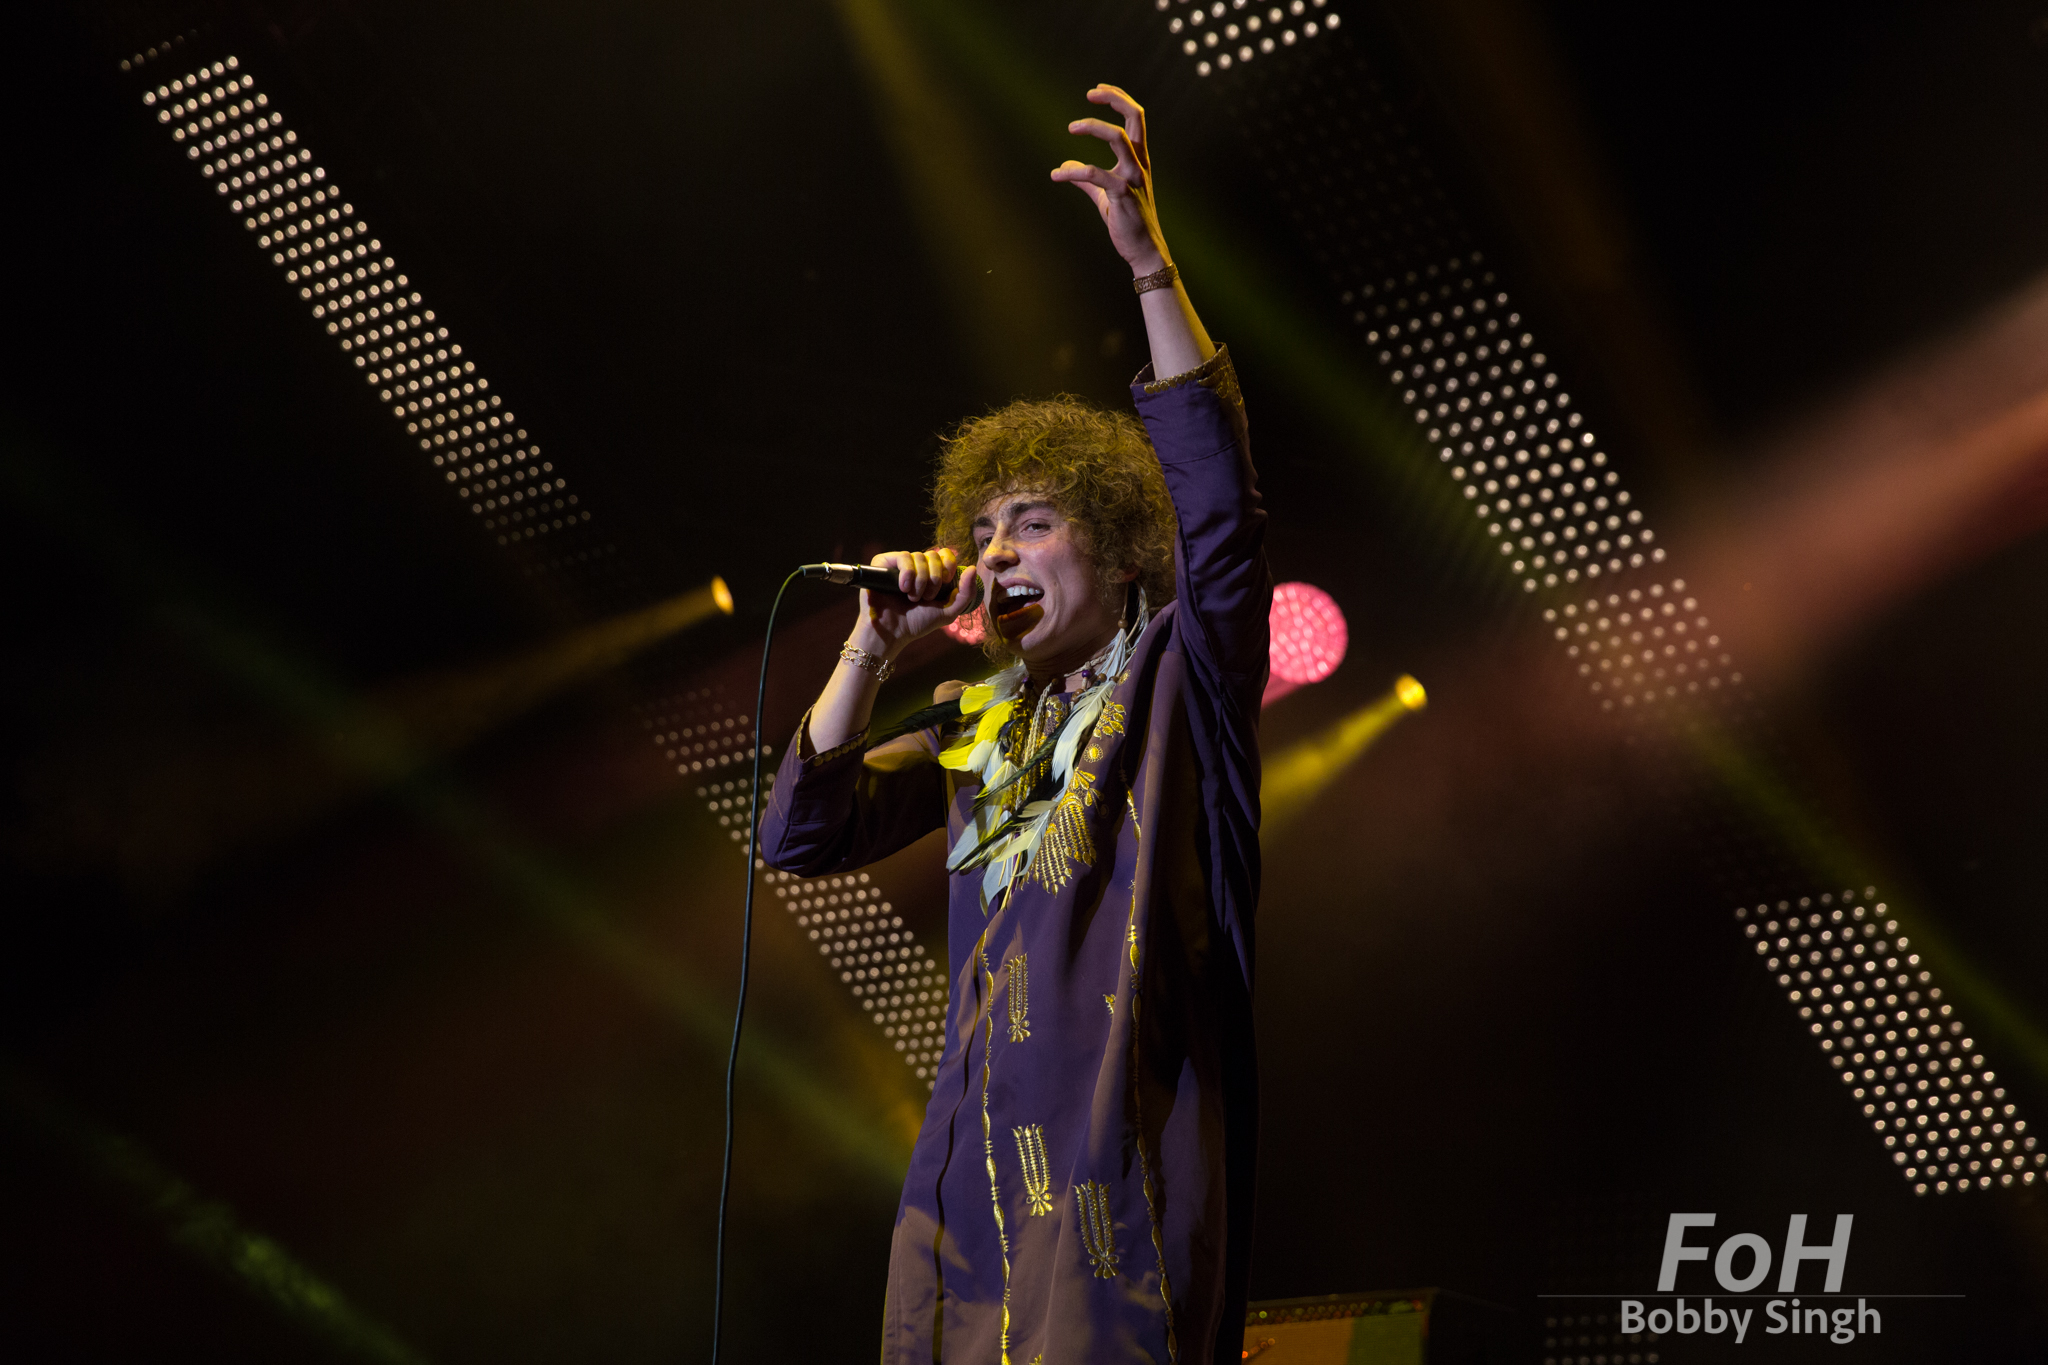 American rock band Greta Van Fleet perform at RBC Echo Beach in Toronto, CANADA